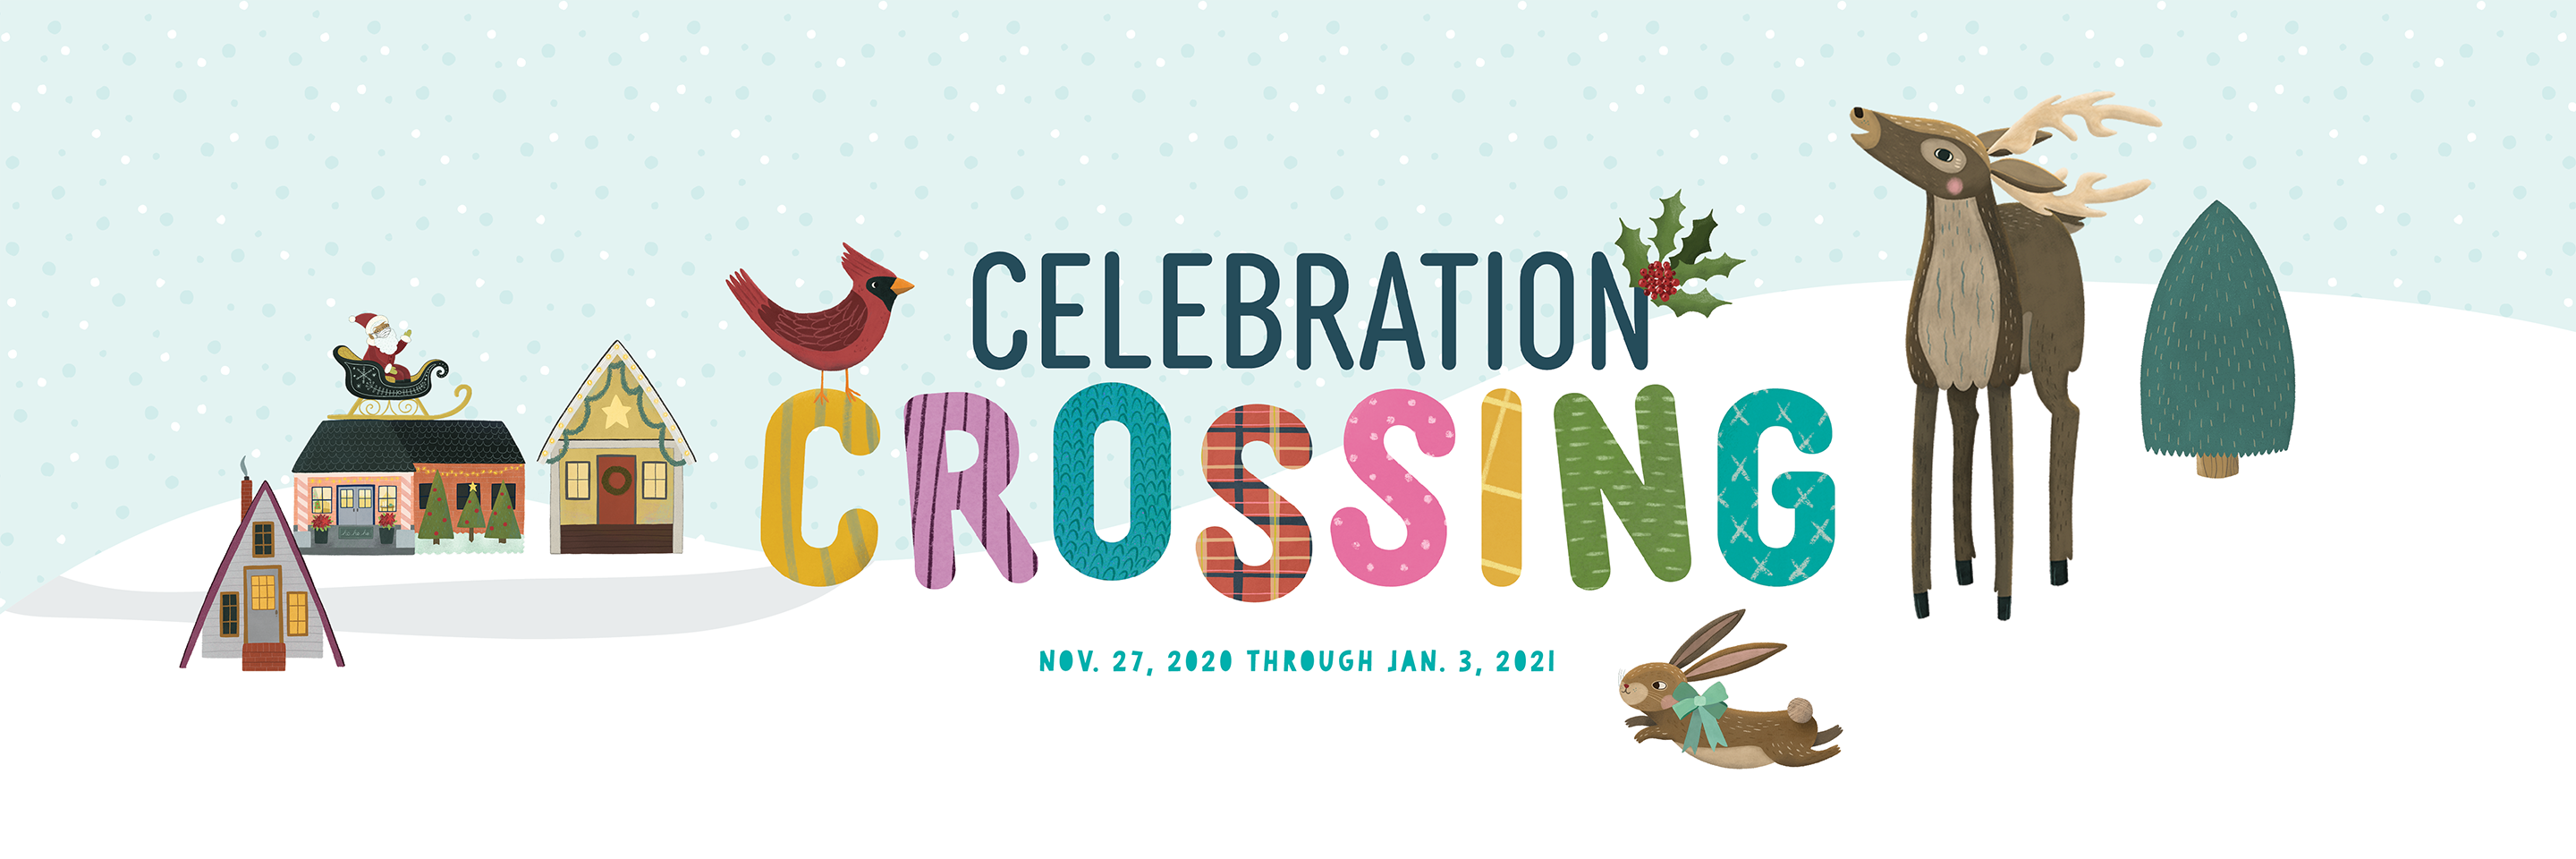 Christmas Things To Do December 8 2020 In Indiana Celebration Crossing 2020   Indiana State Museum